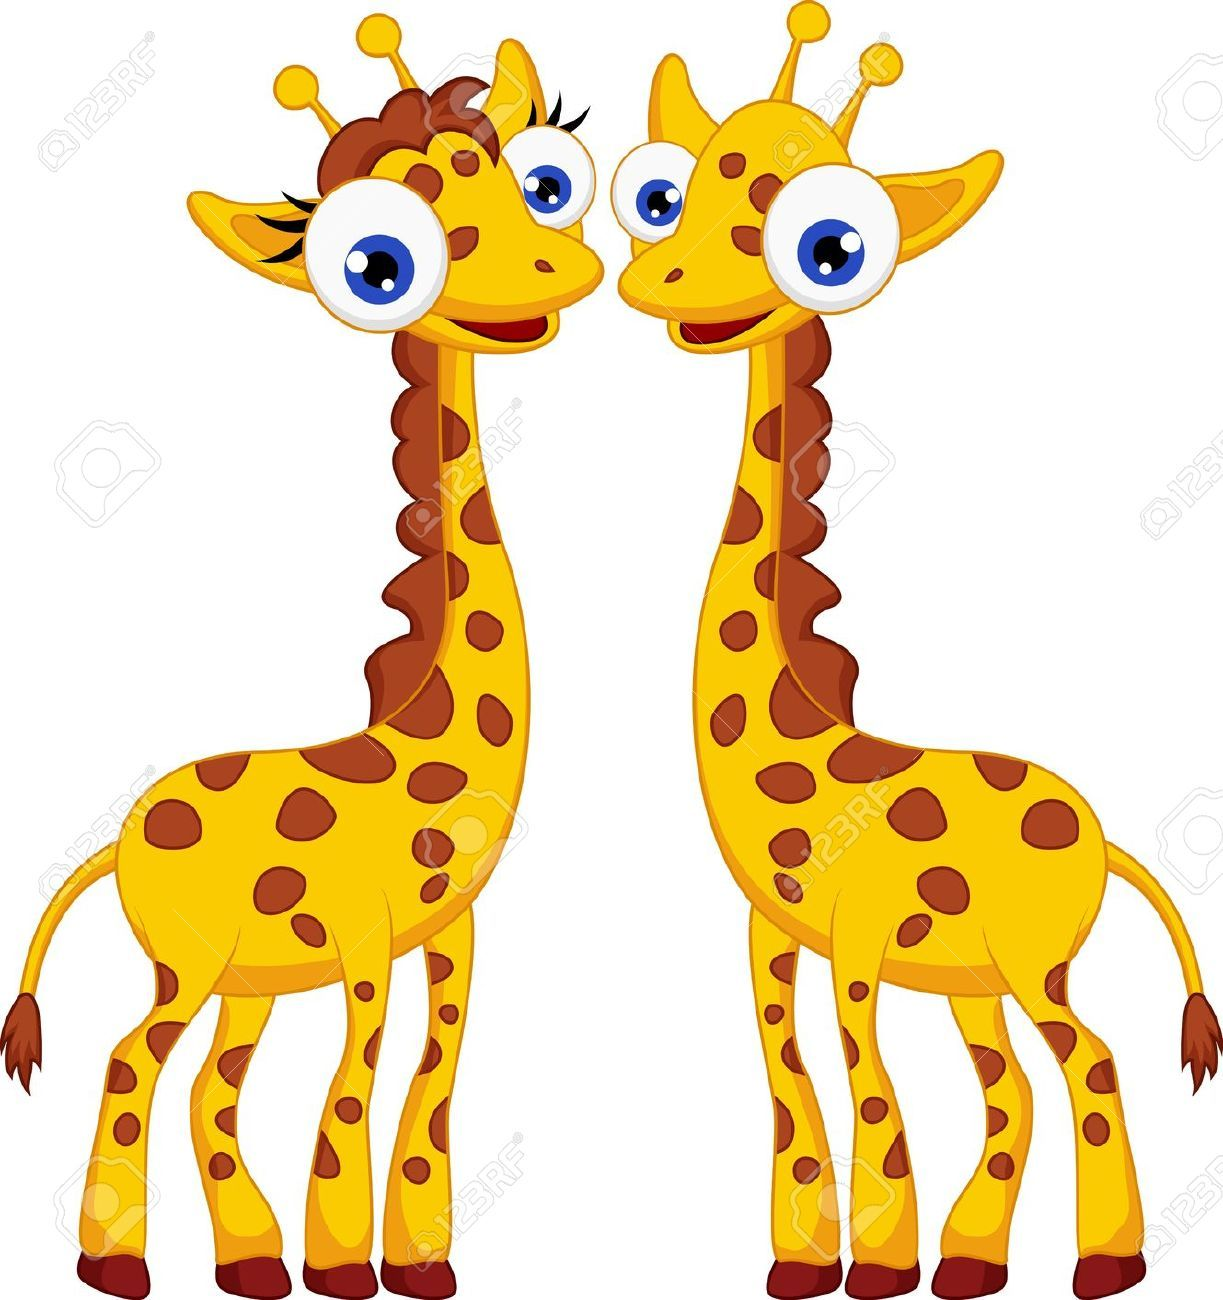 giraffe clipart at getdrawings com free for personal use giraffe rh getdrawings com giraffe clip art images giraffe clipart baby